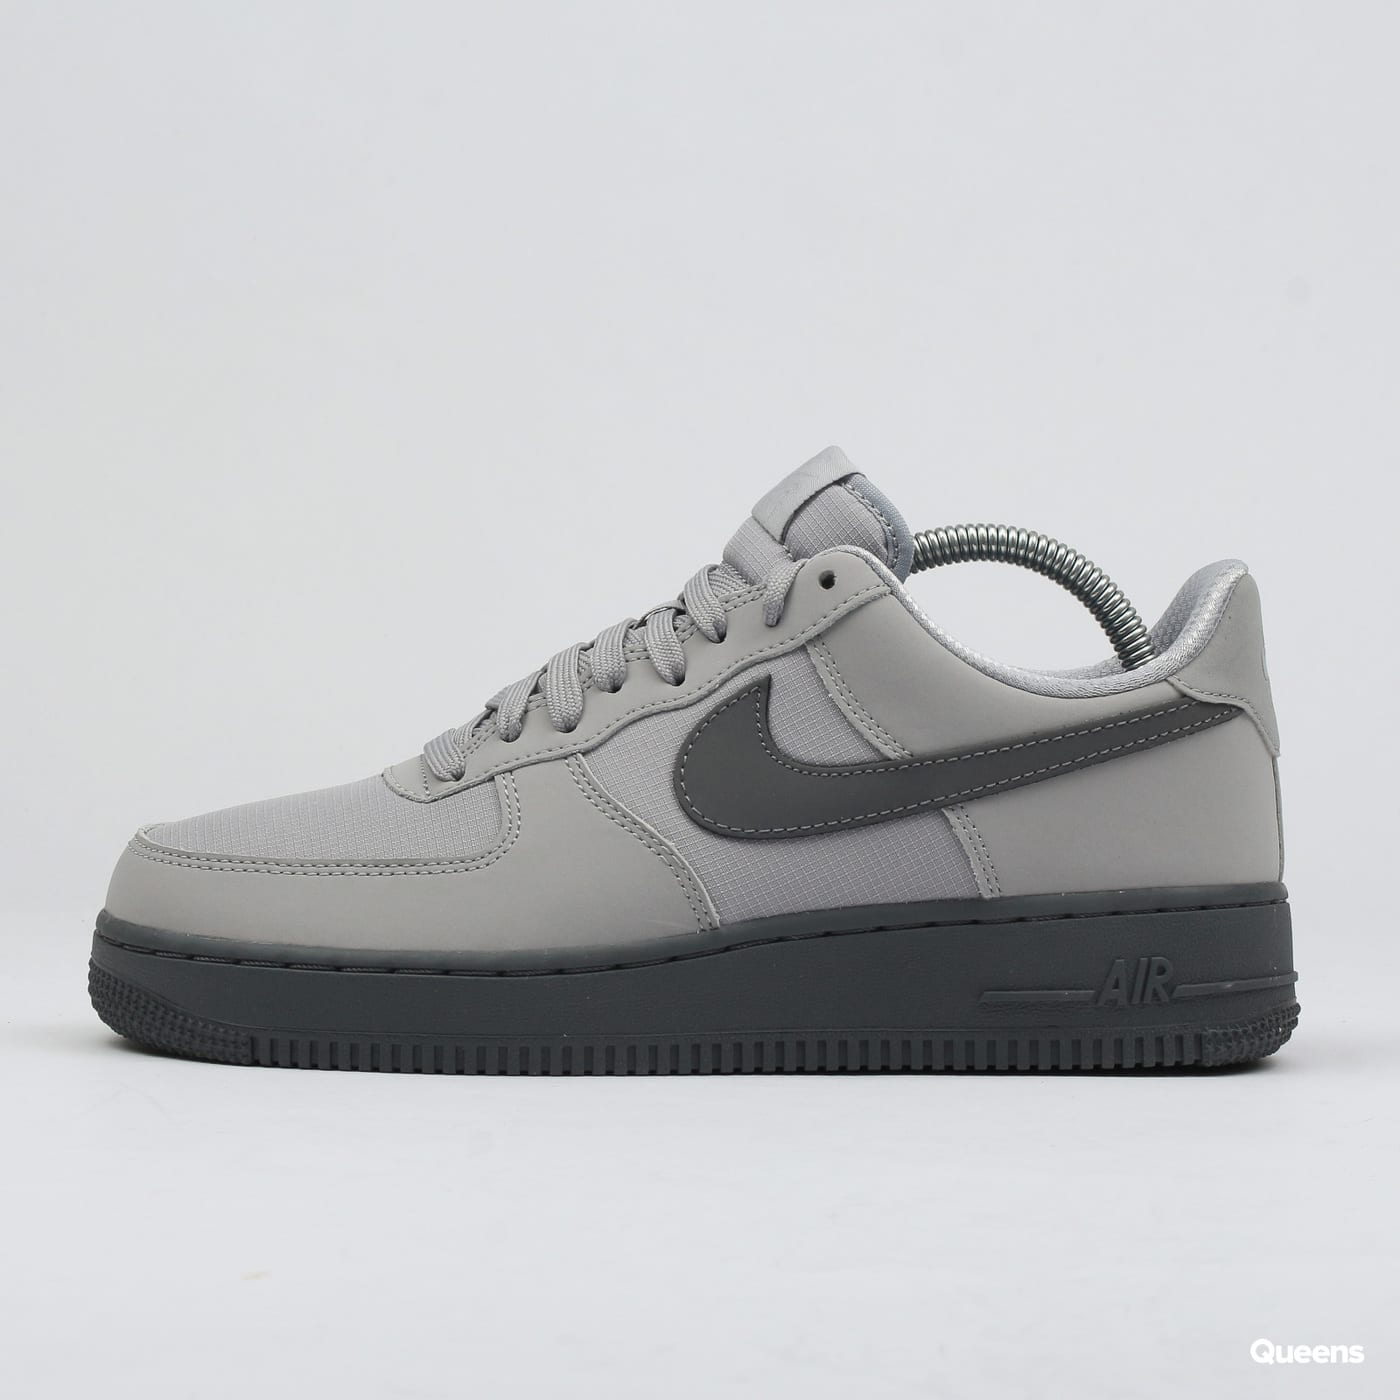 Sneakers Nike Air Force 1 '07 TXT (AJ7282-006)– Queens